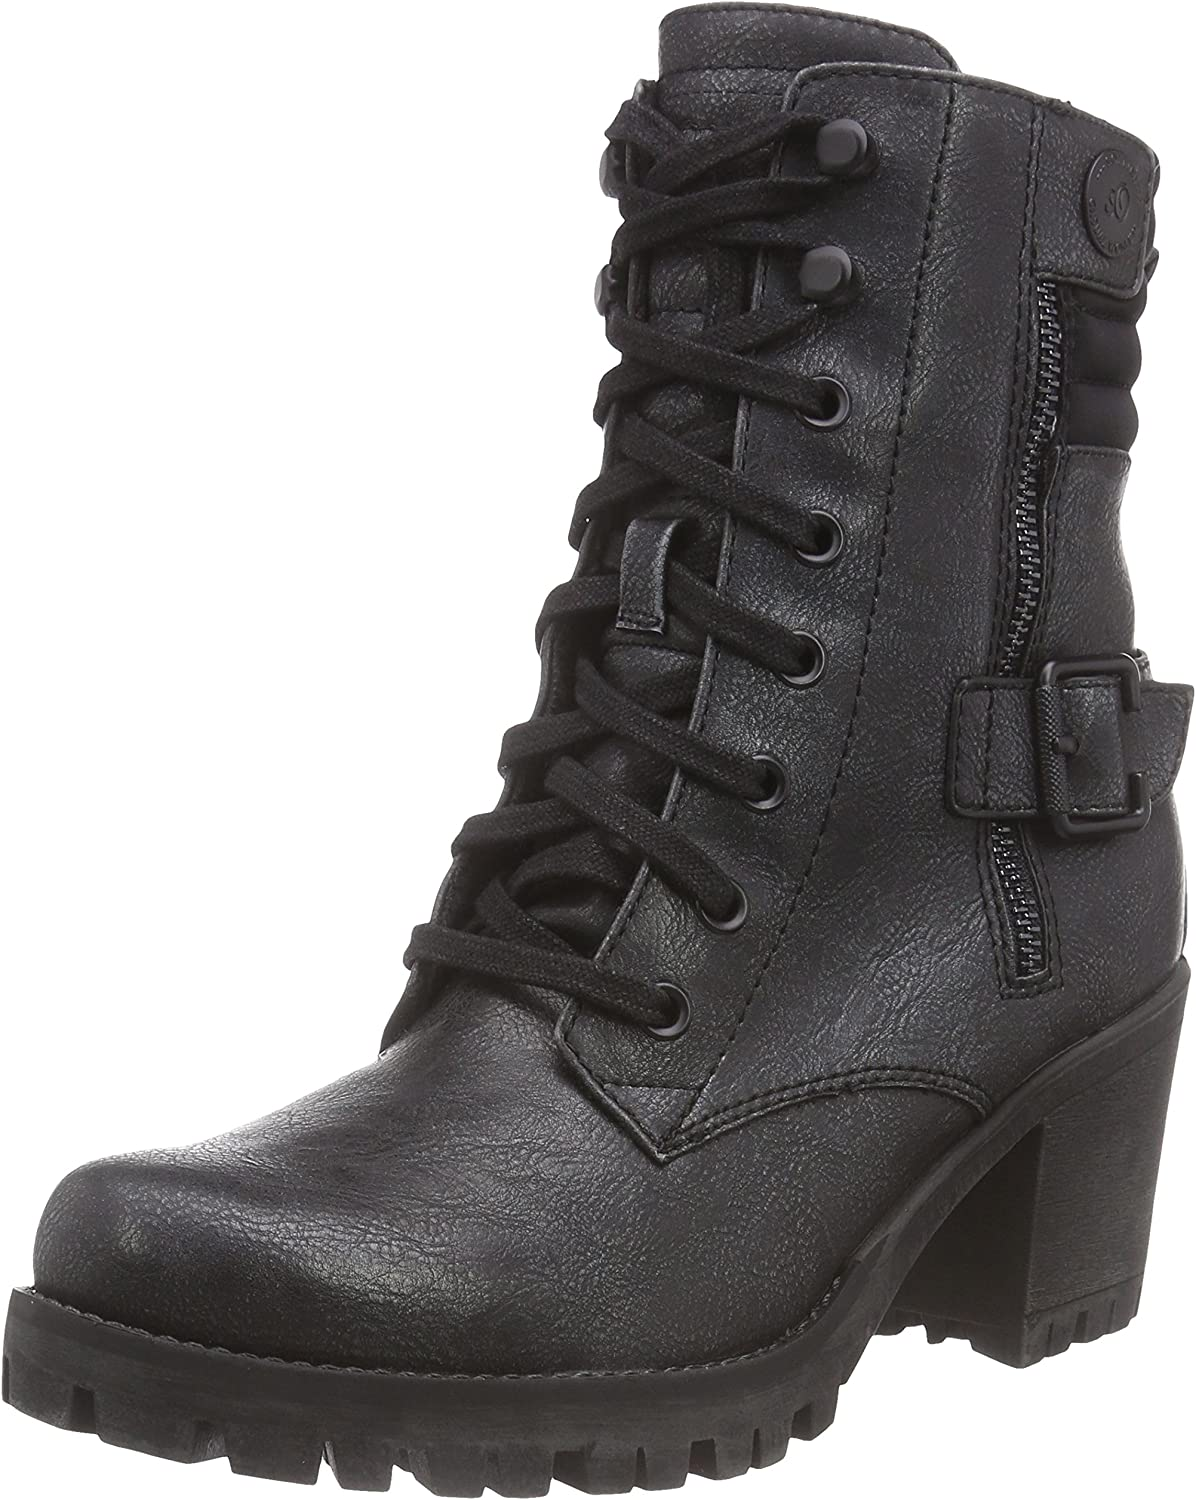 s.Oliver Popular shop is the lowest price challenge Women's Unlined Classics Minneapolis Mall Boots and Bootees